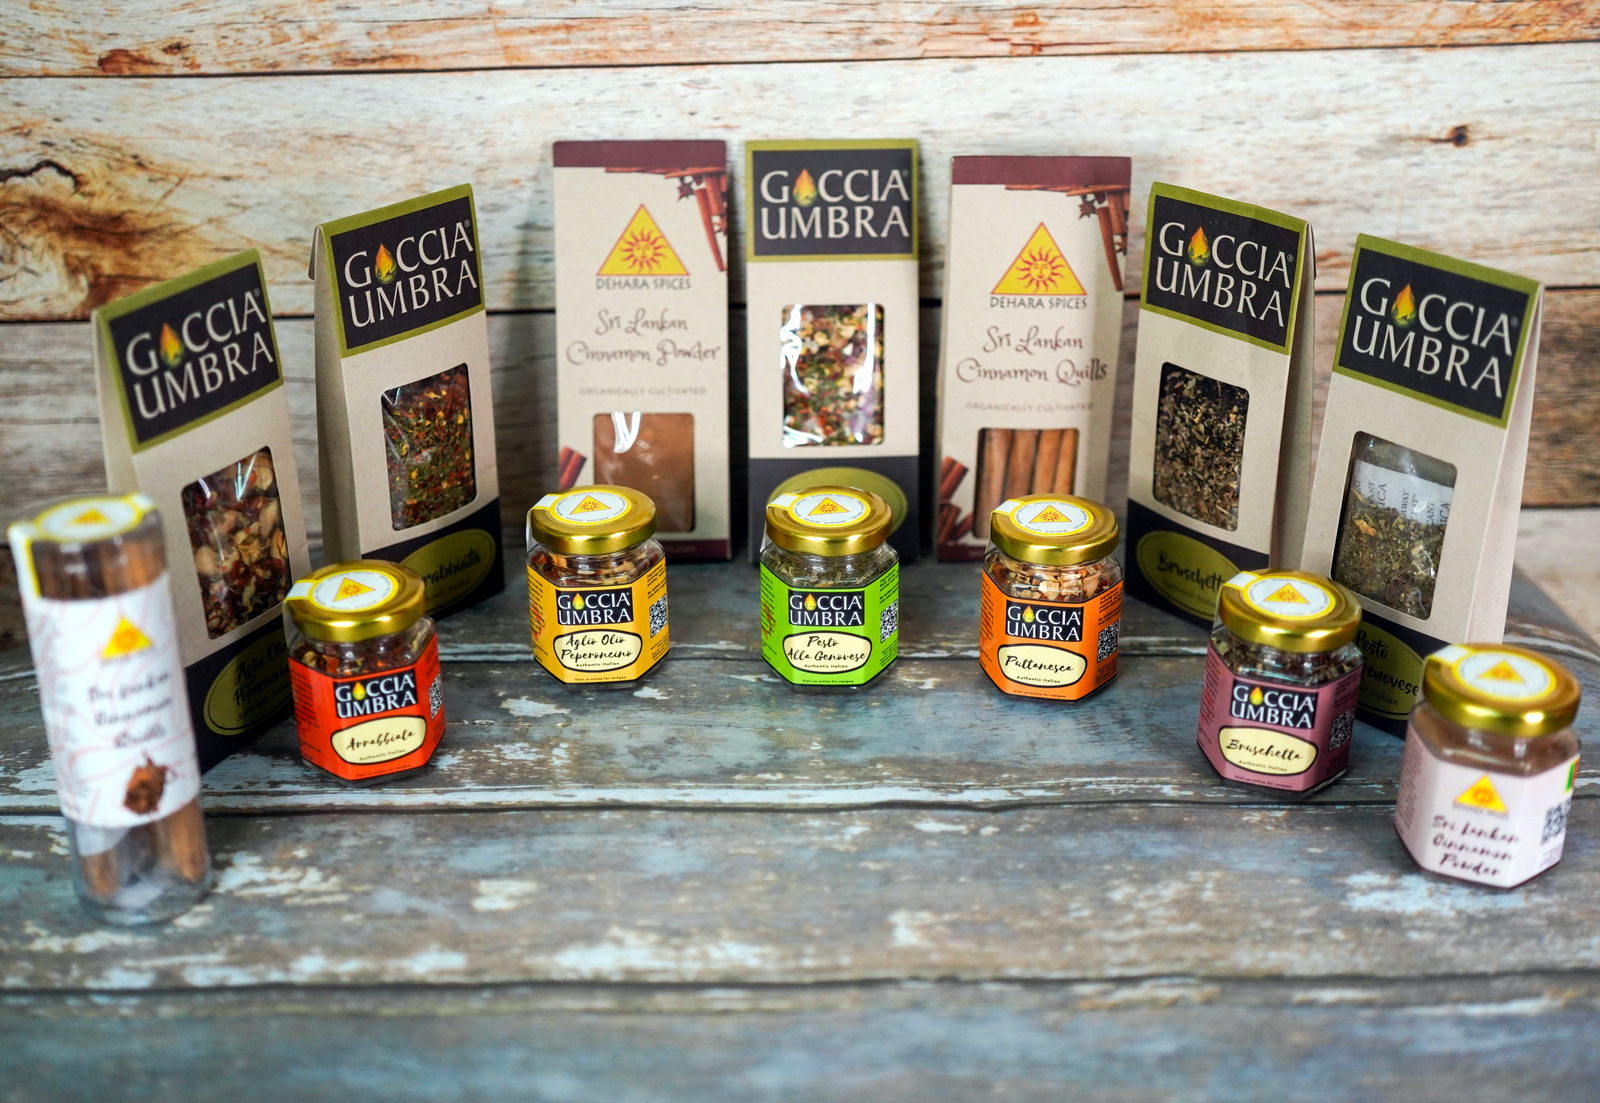 Dehara Spices: Premium Italian & Sri Lankan spice mixes for extra zing in your cooking